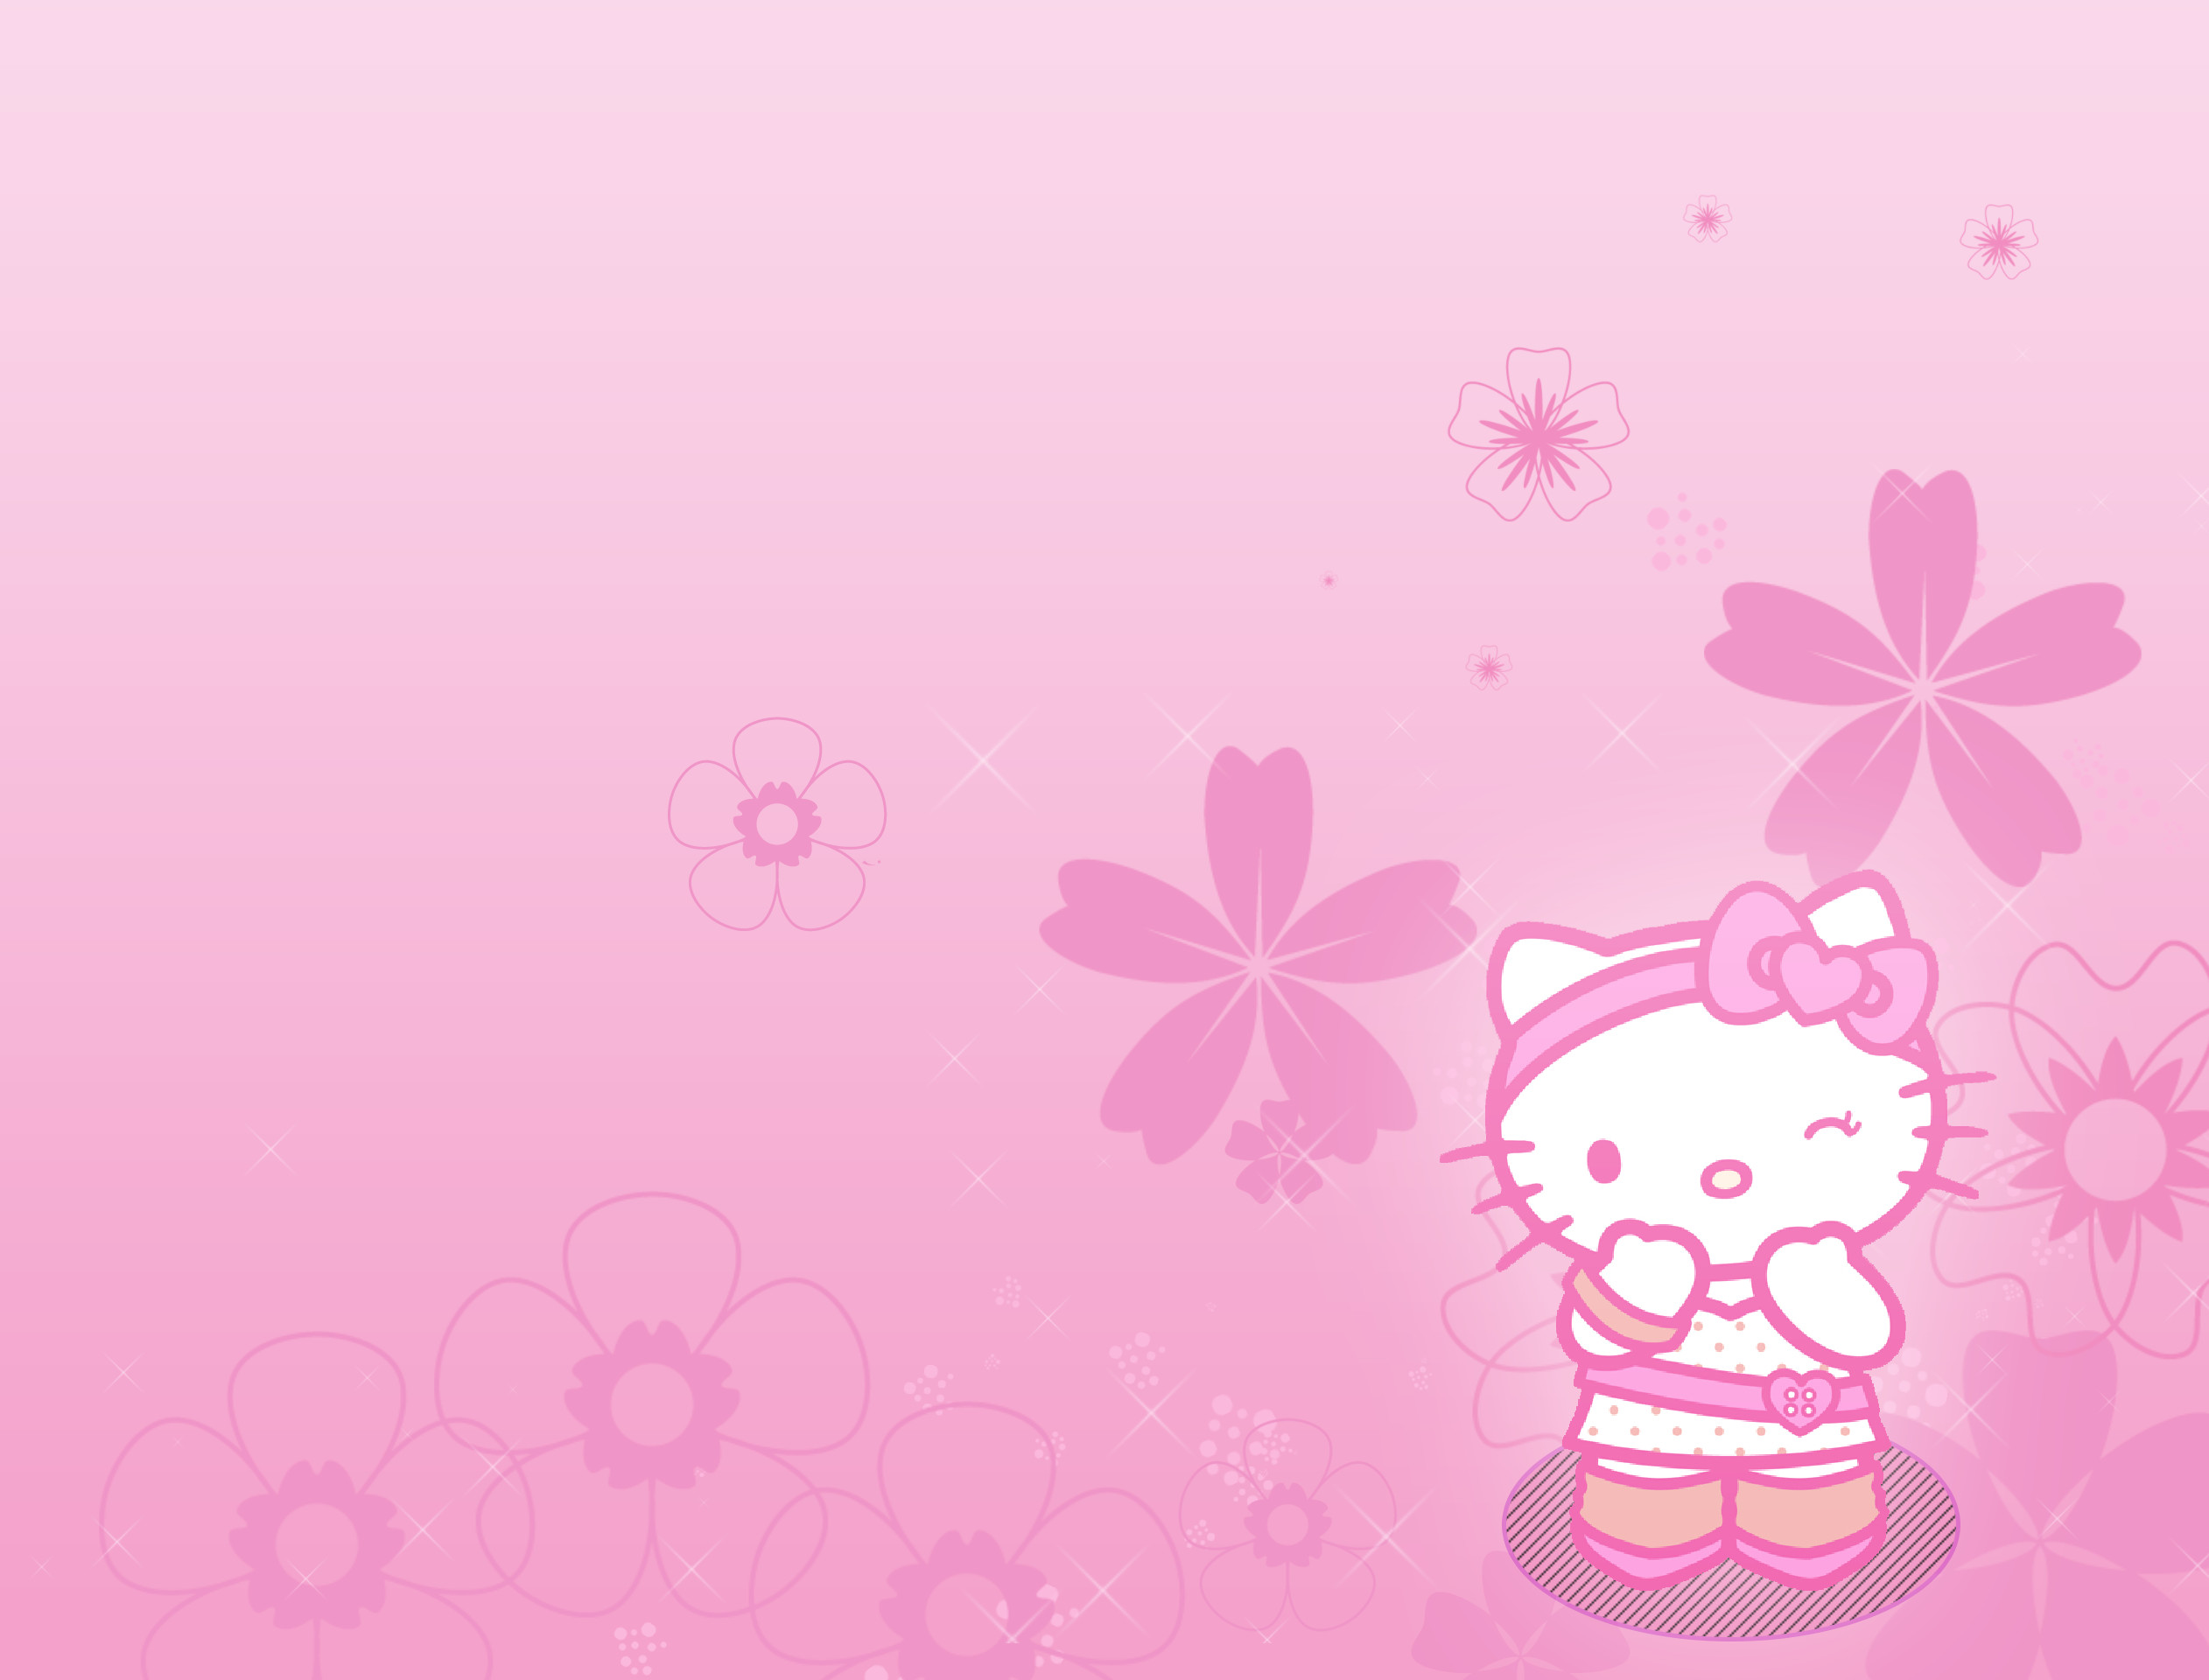 2524x1920 Hello Kitty Wallpaper Iphone by mobi900 Hello Kitty Wallpaper Iphone by  mobi900